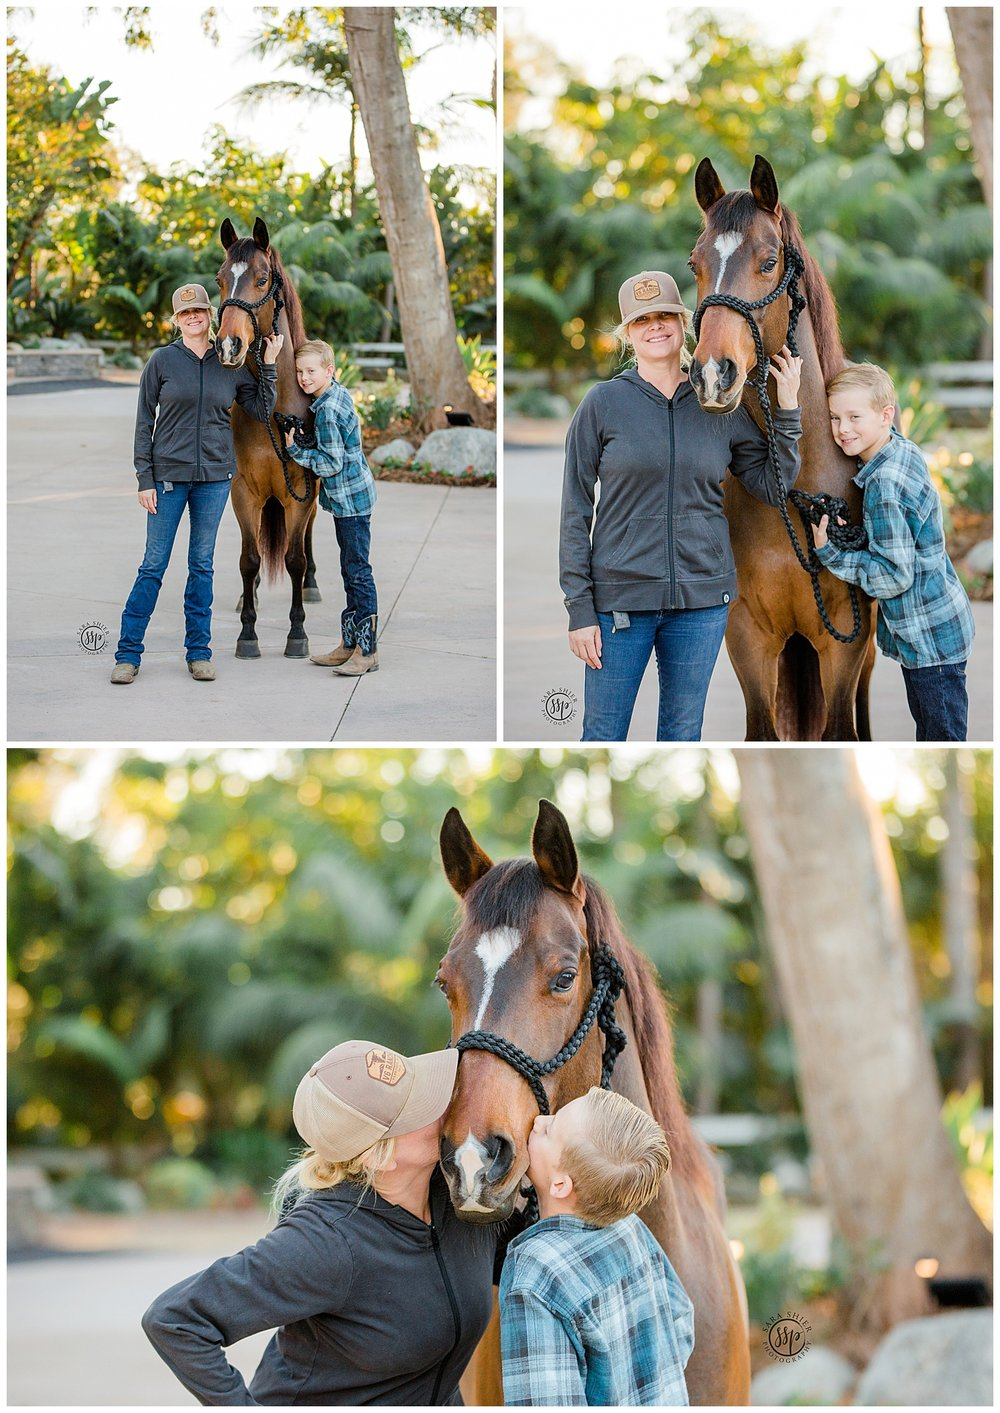 Black Background Horse Rider Equine Photographer Southern California Sara Shier Photography SoCal Equestrian Cowgirl_0453.jpg